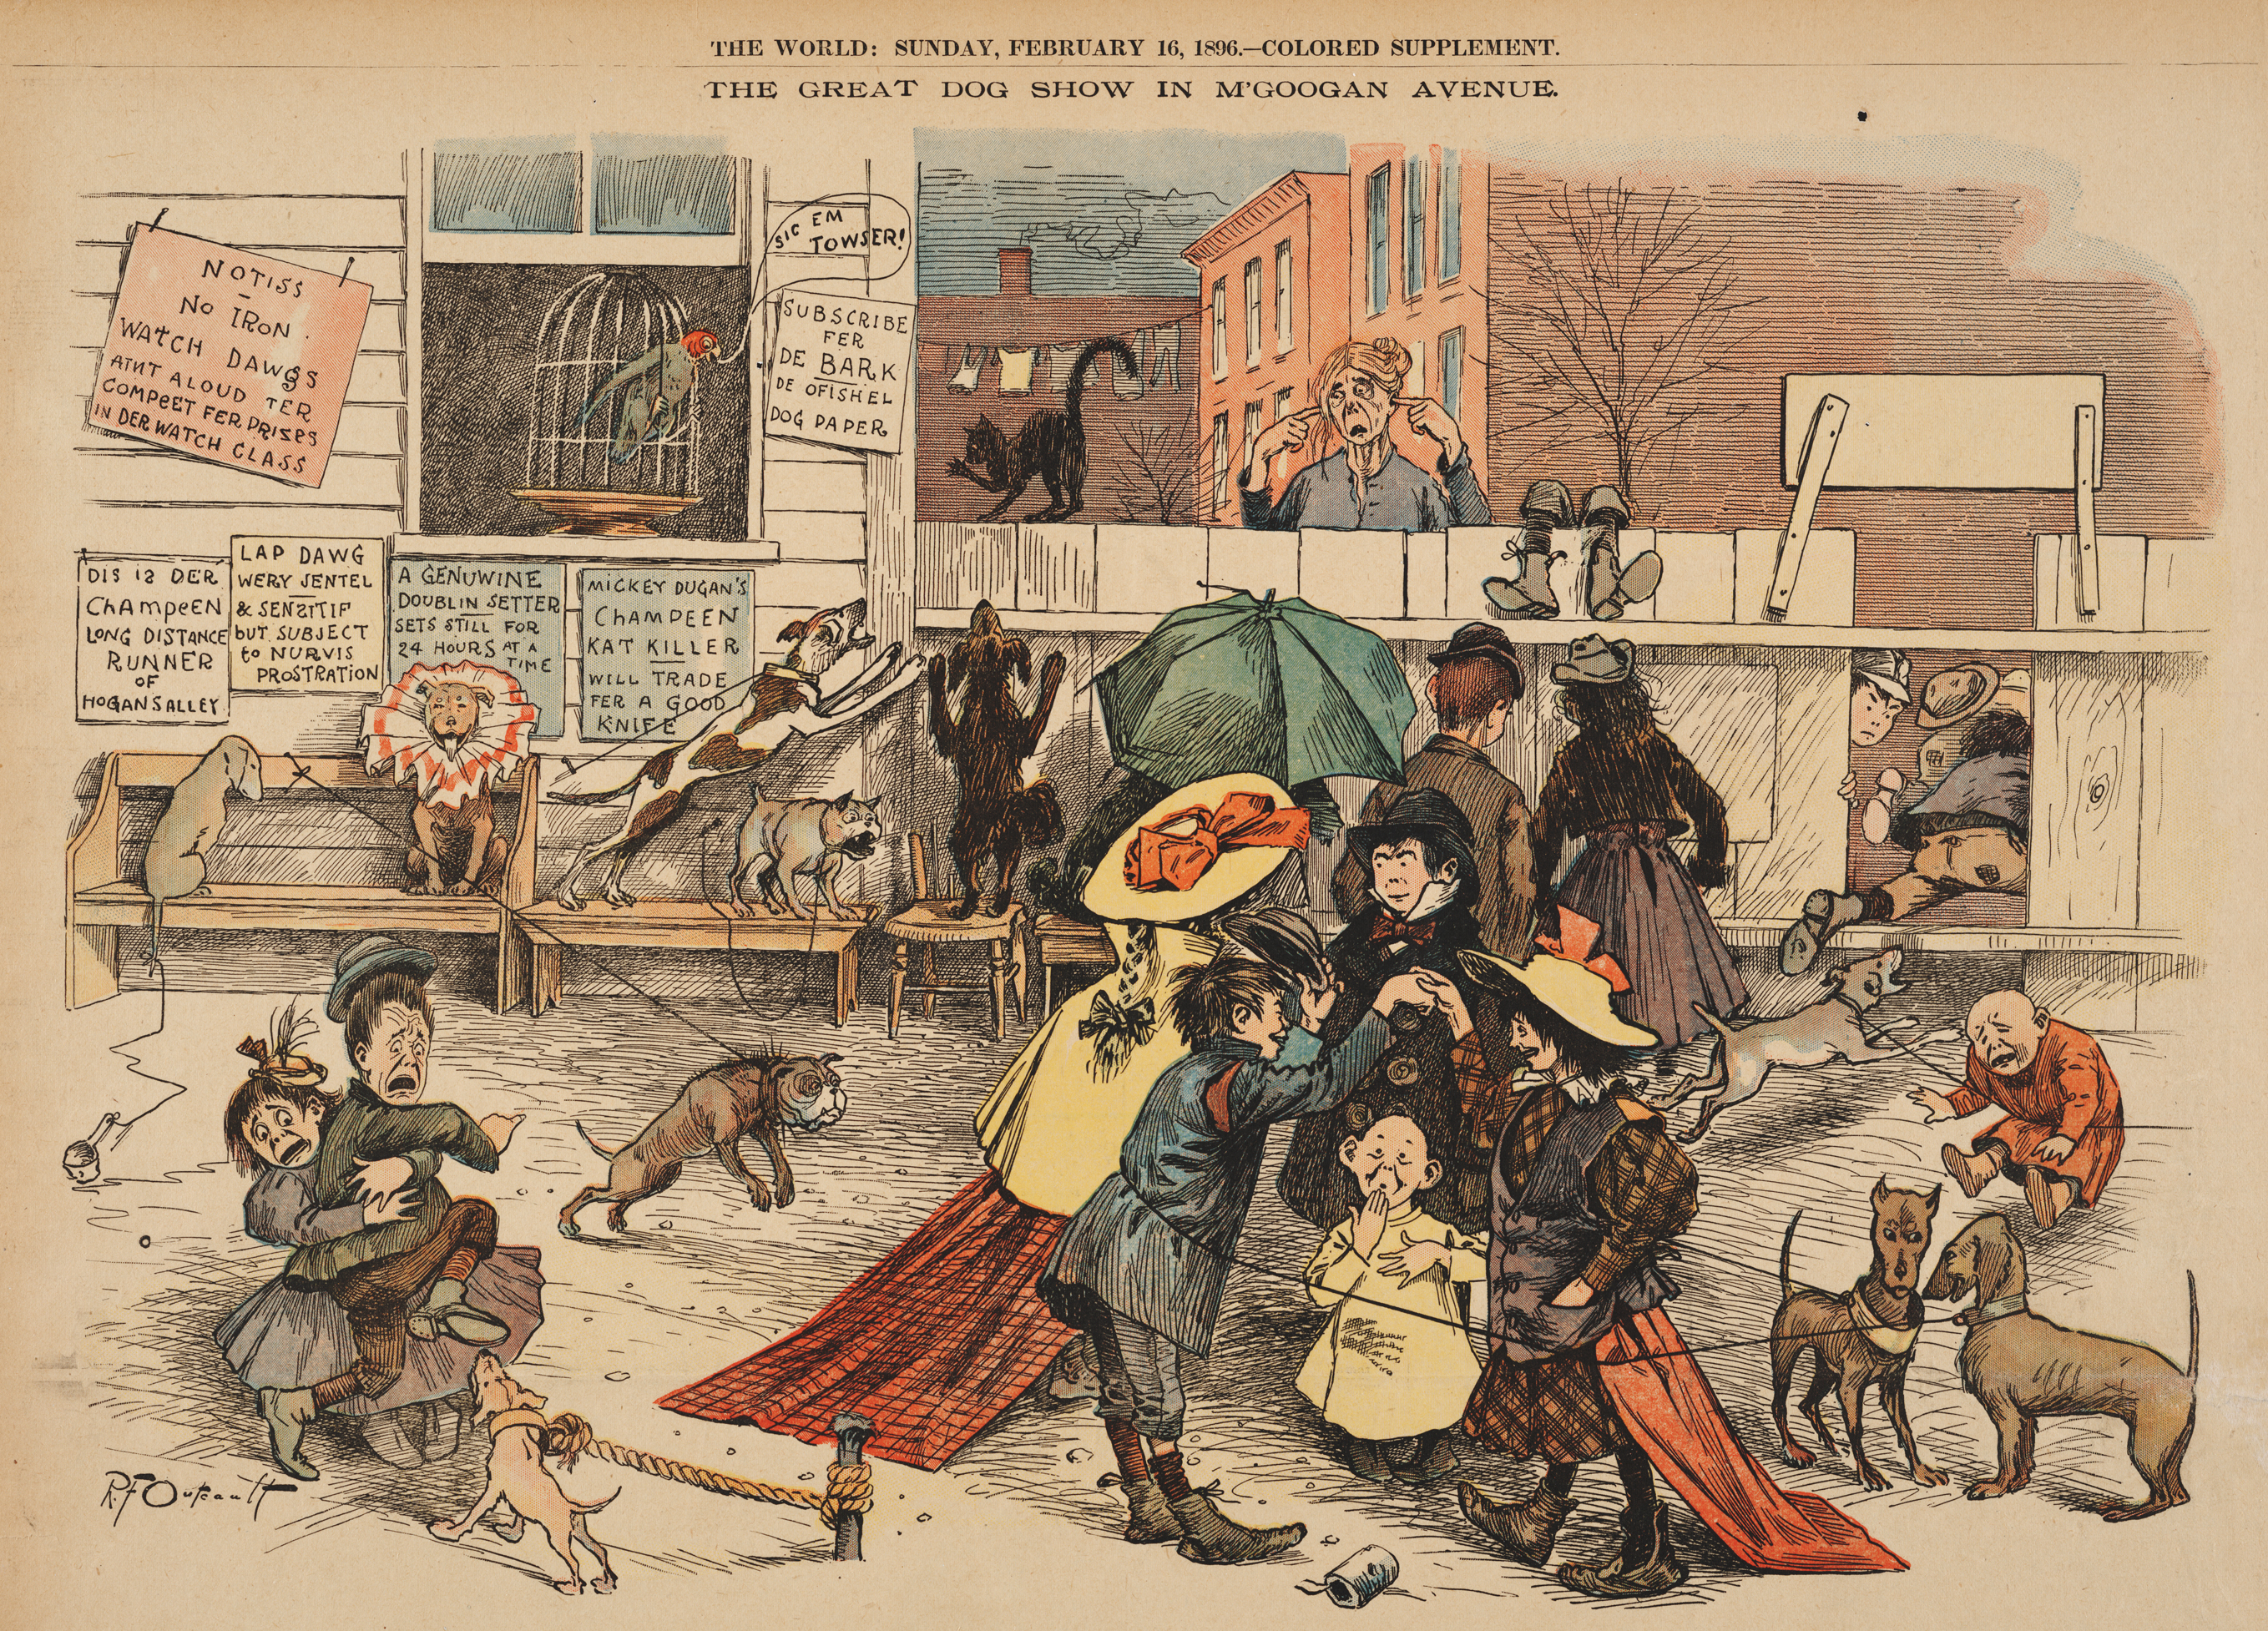 February 16, 1896. The Great Dog Show in M'Googan Avenue New York World